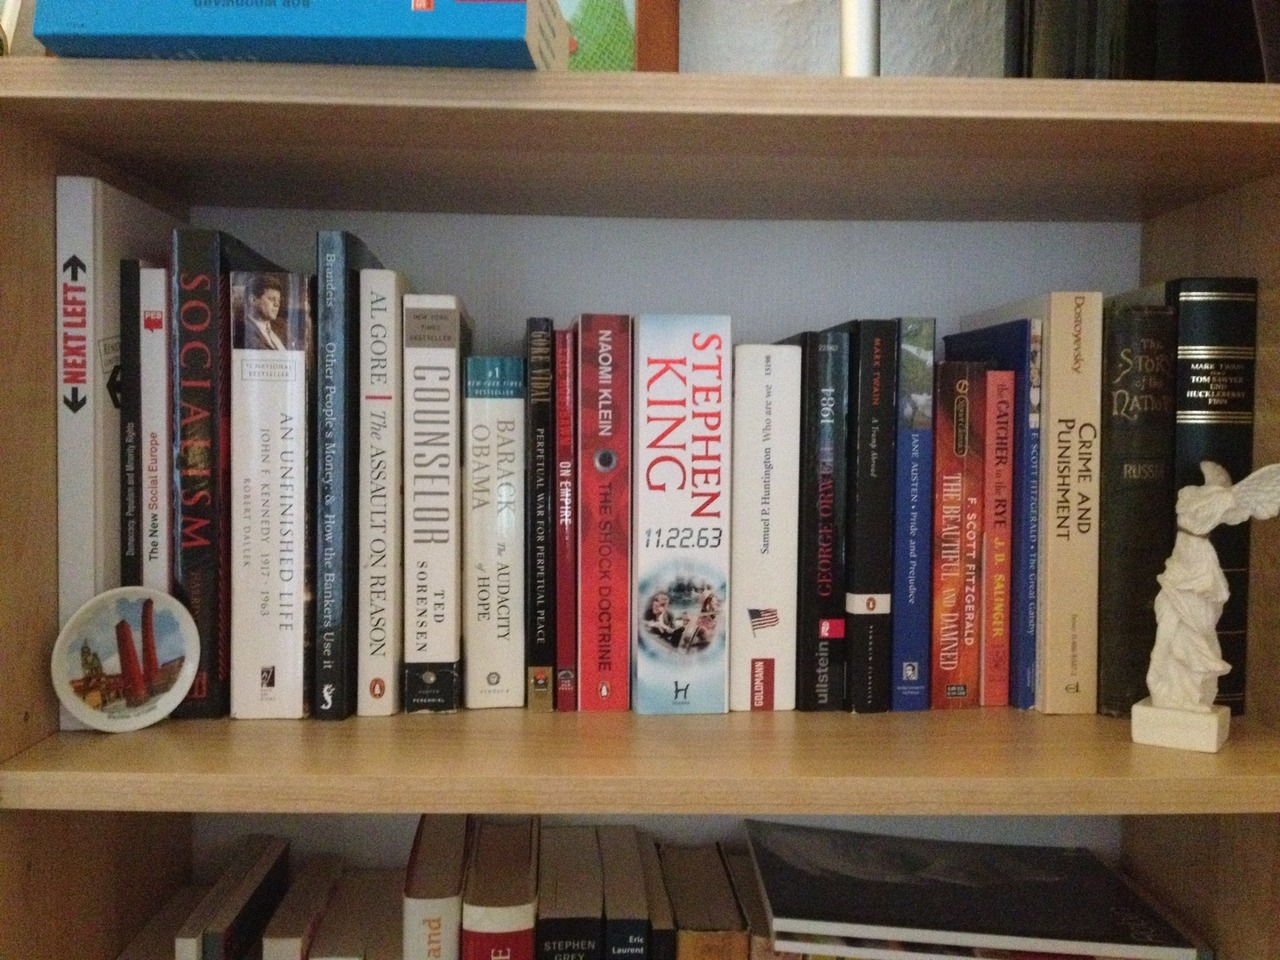 Georgi submitted to shareyourshelf:  My bookshelves are pretty diverse as far as the language is concerned :-) (Bulgarian, English, German, Russian). Here is a close-up of my still small but constantly expanding English section.  Books are a great way to master any language!